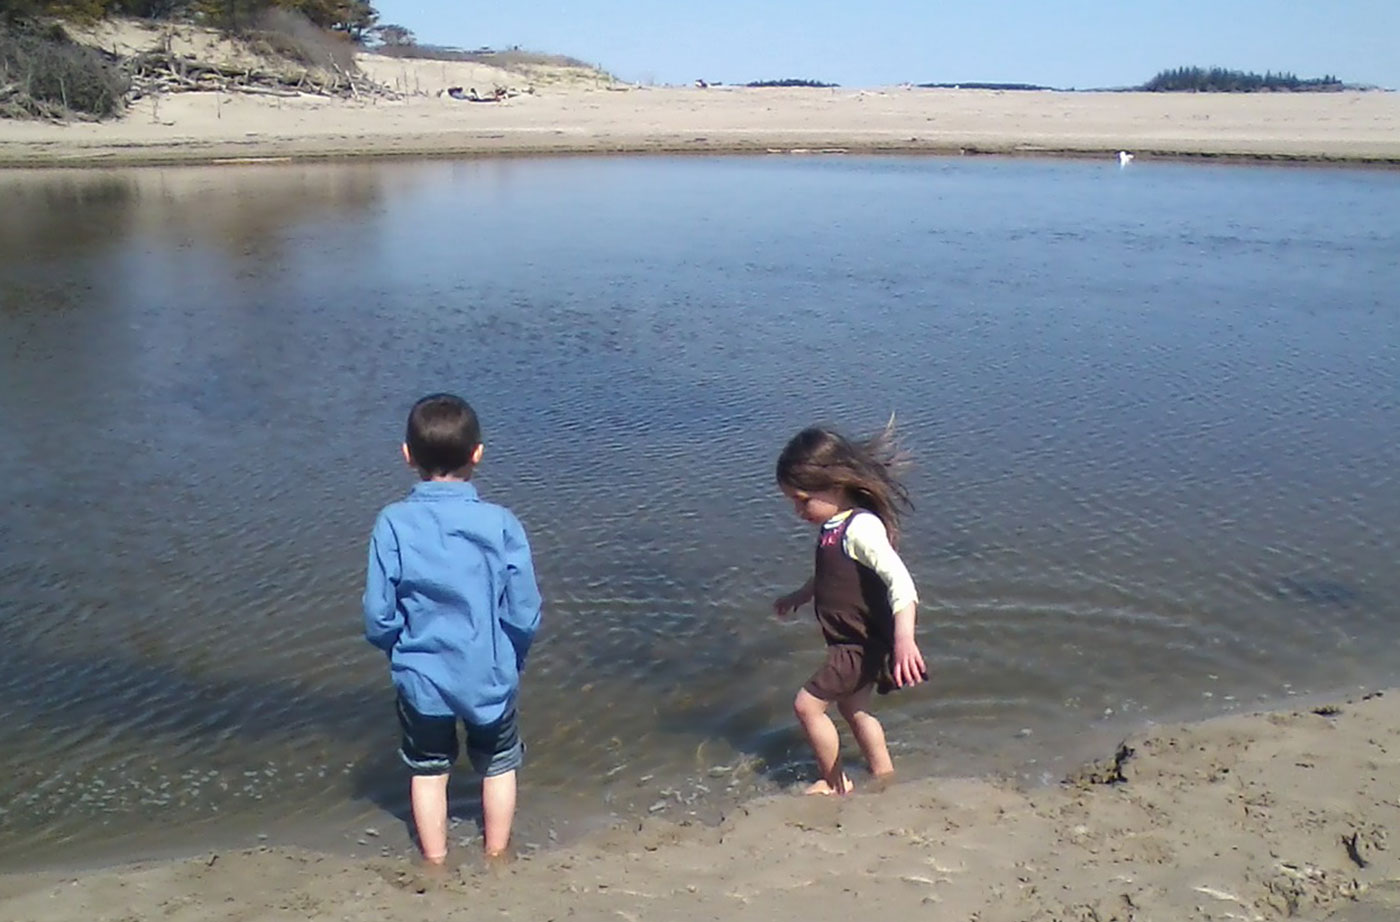 children playing in water on Maine coastline